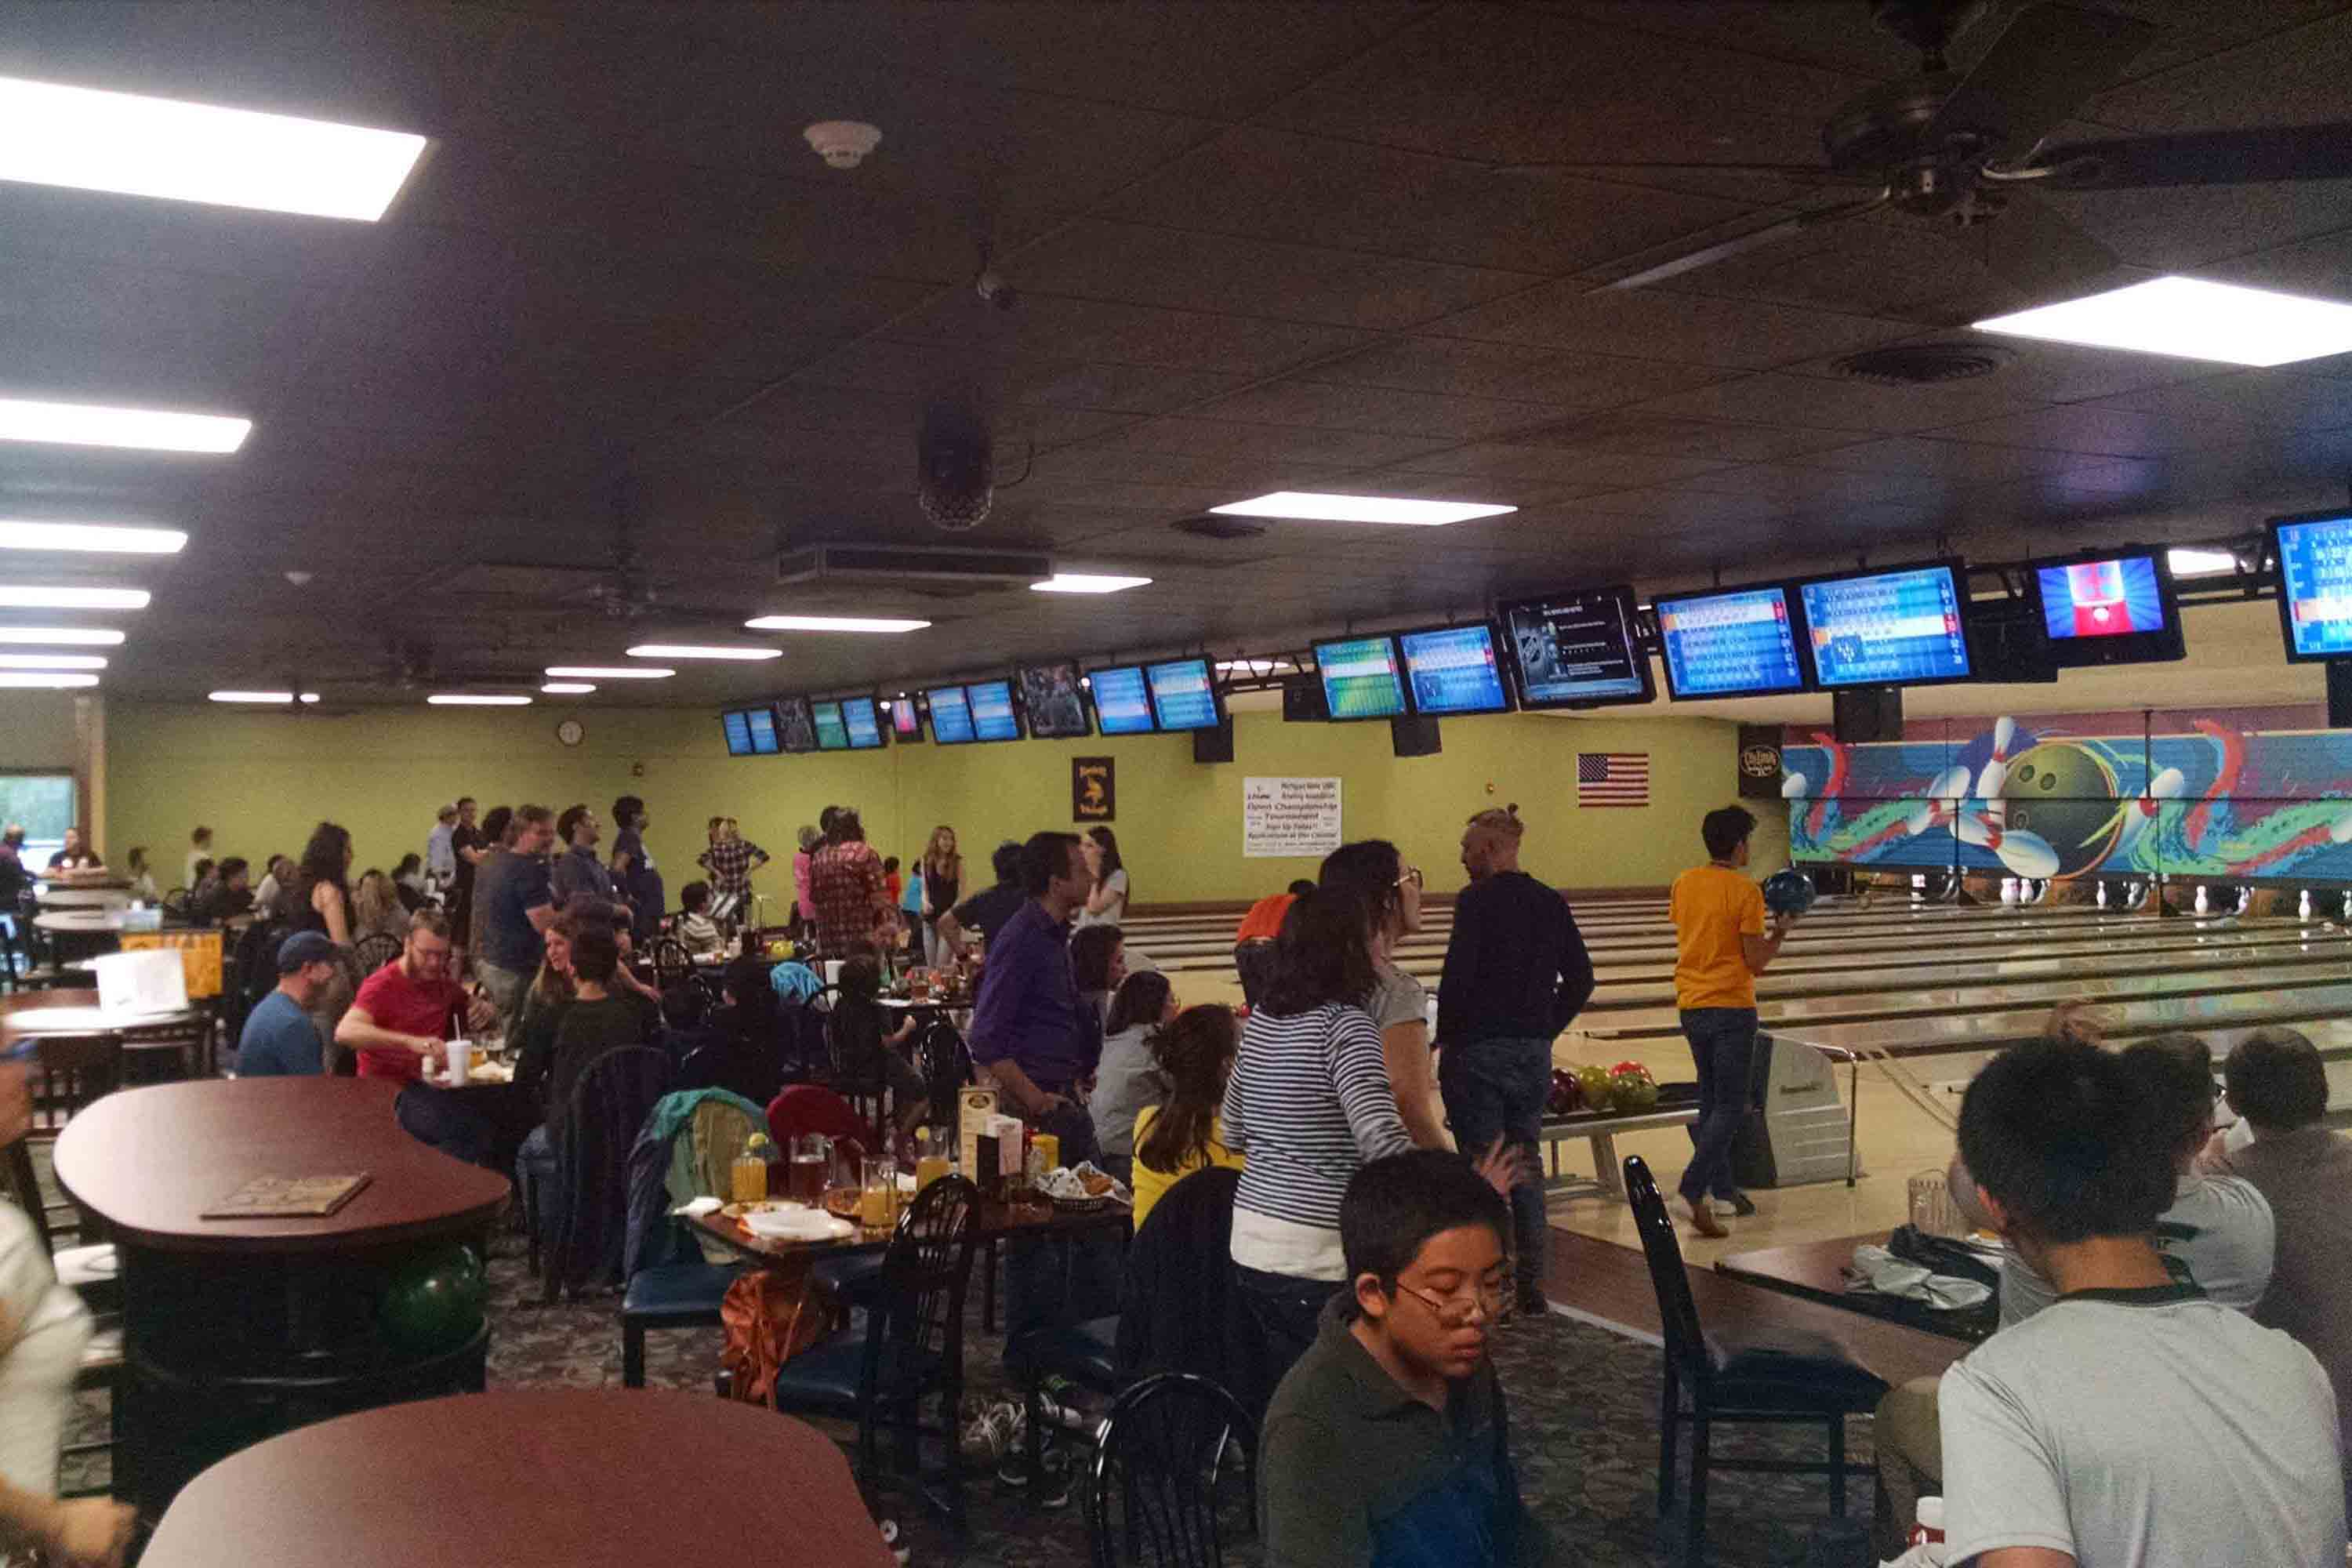 Bowlers having a good time. Parents and kids attended.